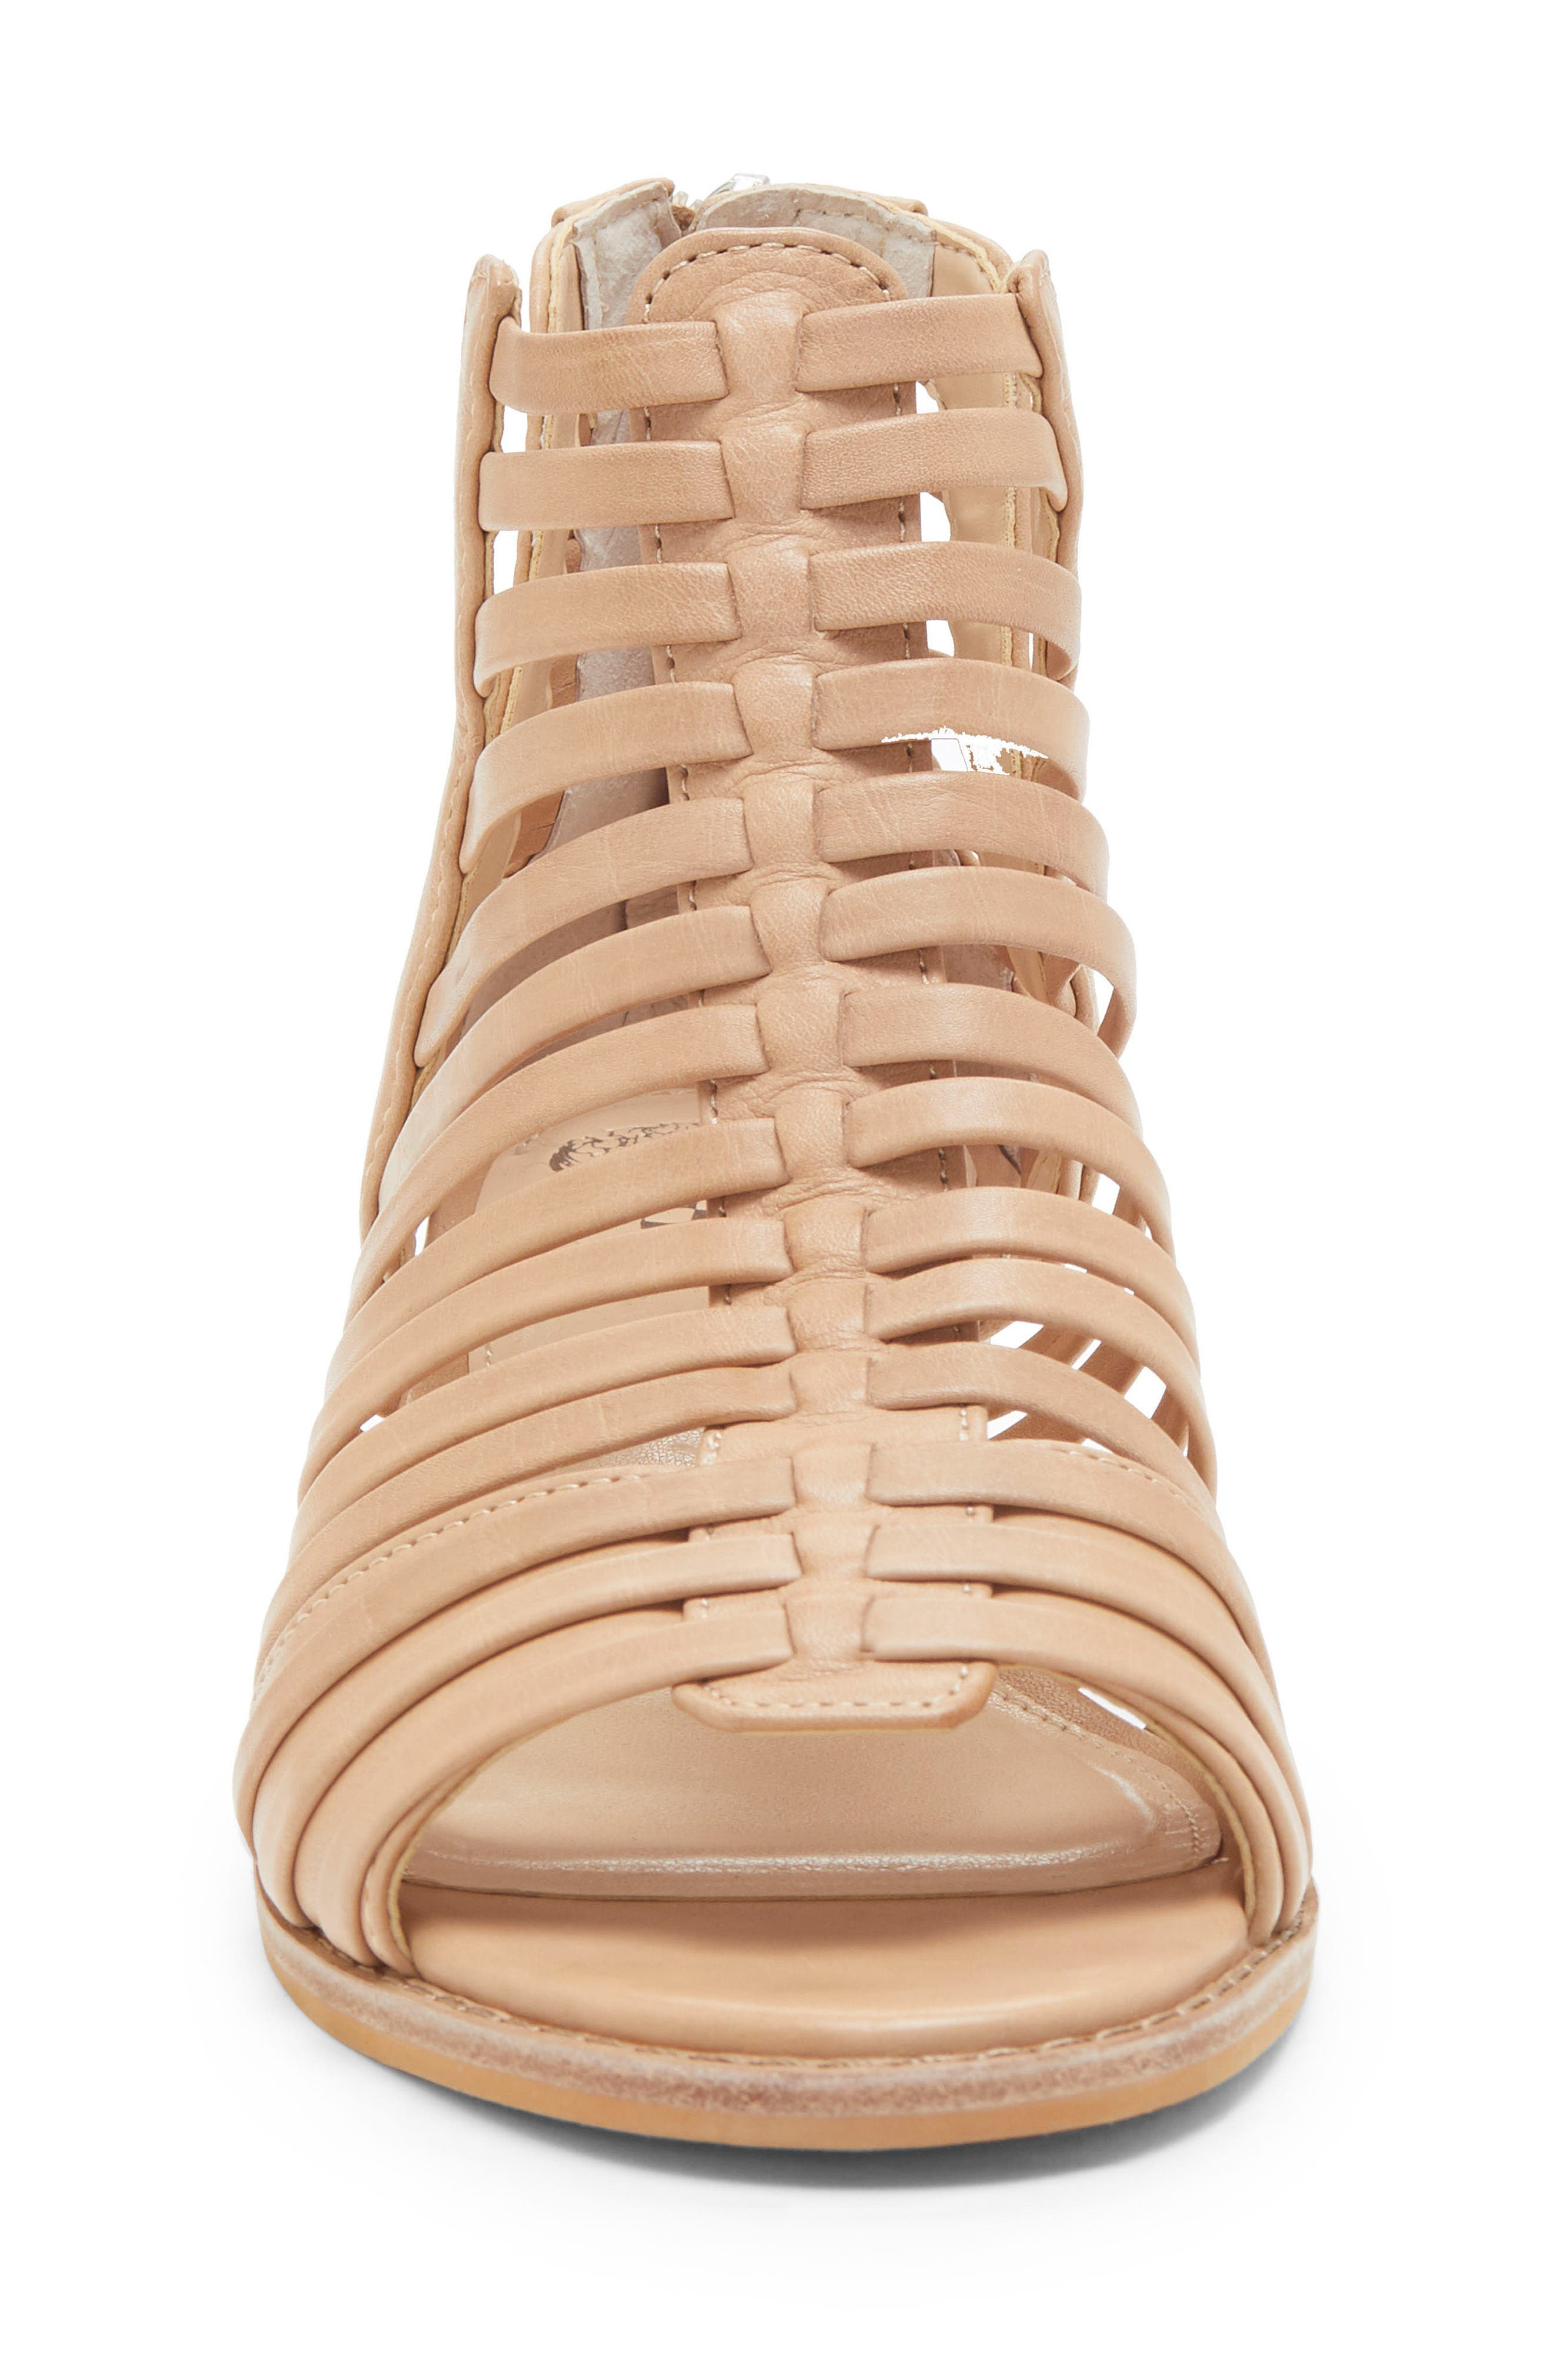 VINCE CAMUTO, Revey Wedge Sandal, Alternate thumbnail 4, color, NATURAL LEATHER